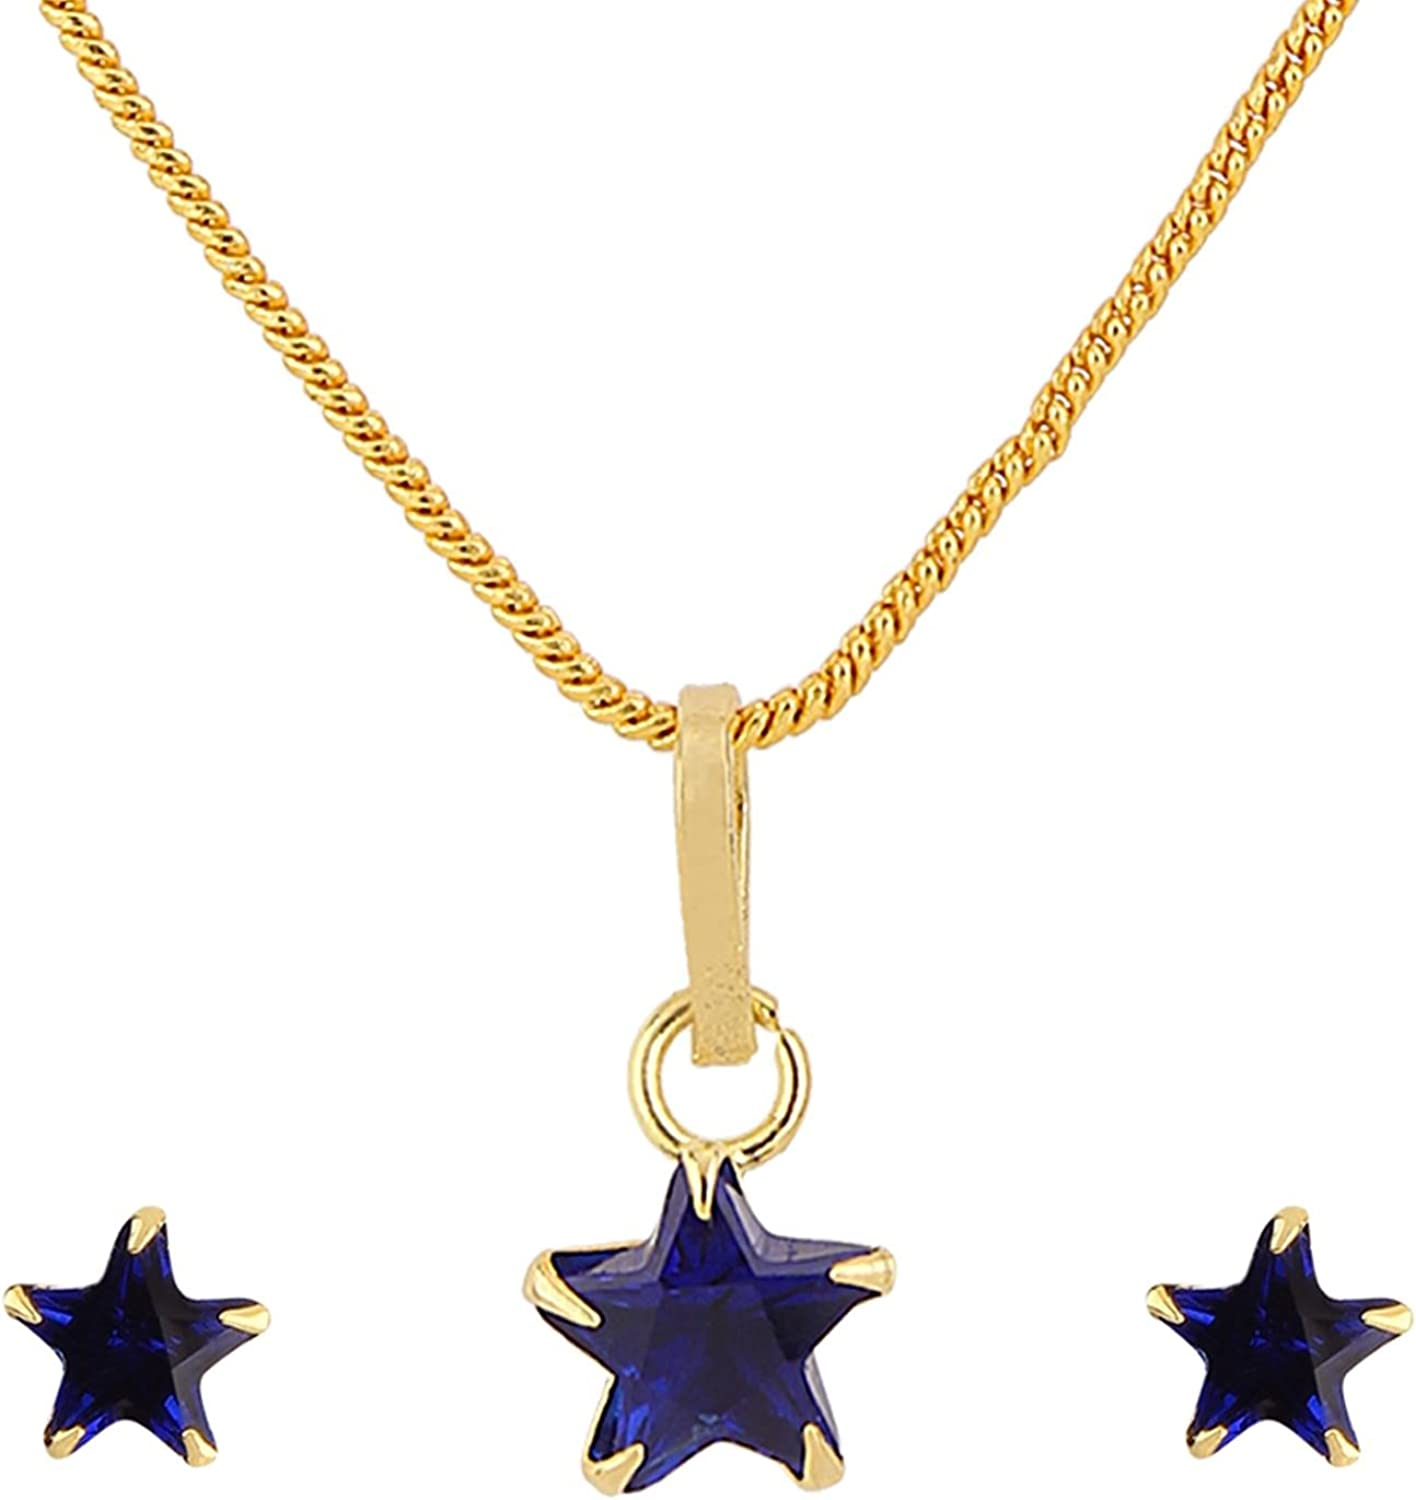 Efulgenz 14K Gold Plated Blue Star Cubic Zirconia Pendant Necklace and Earrings Jewelry Set for Women Girls Brides Bridesmaids